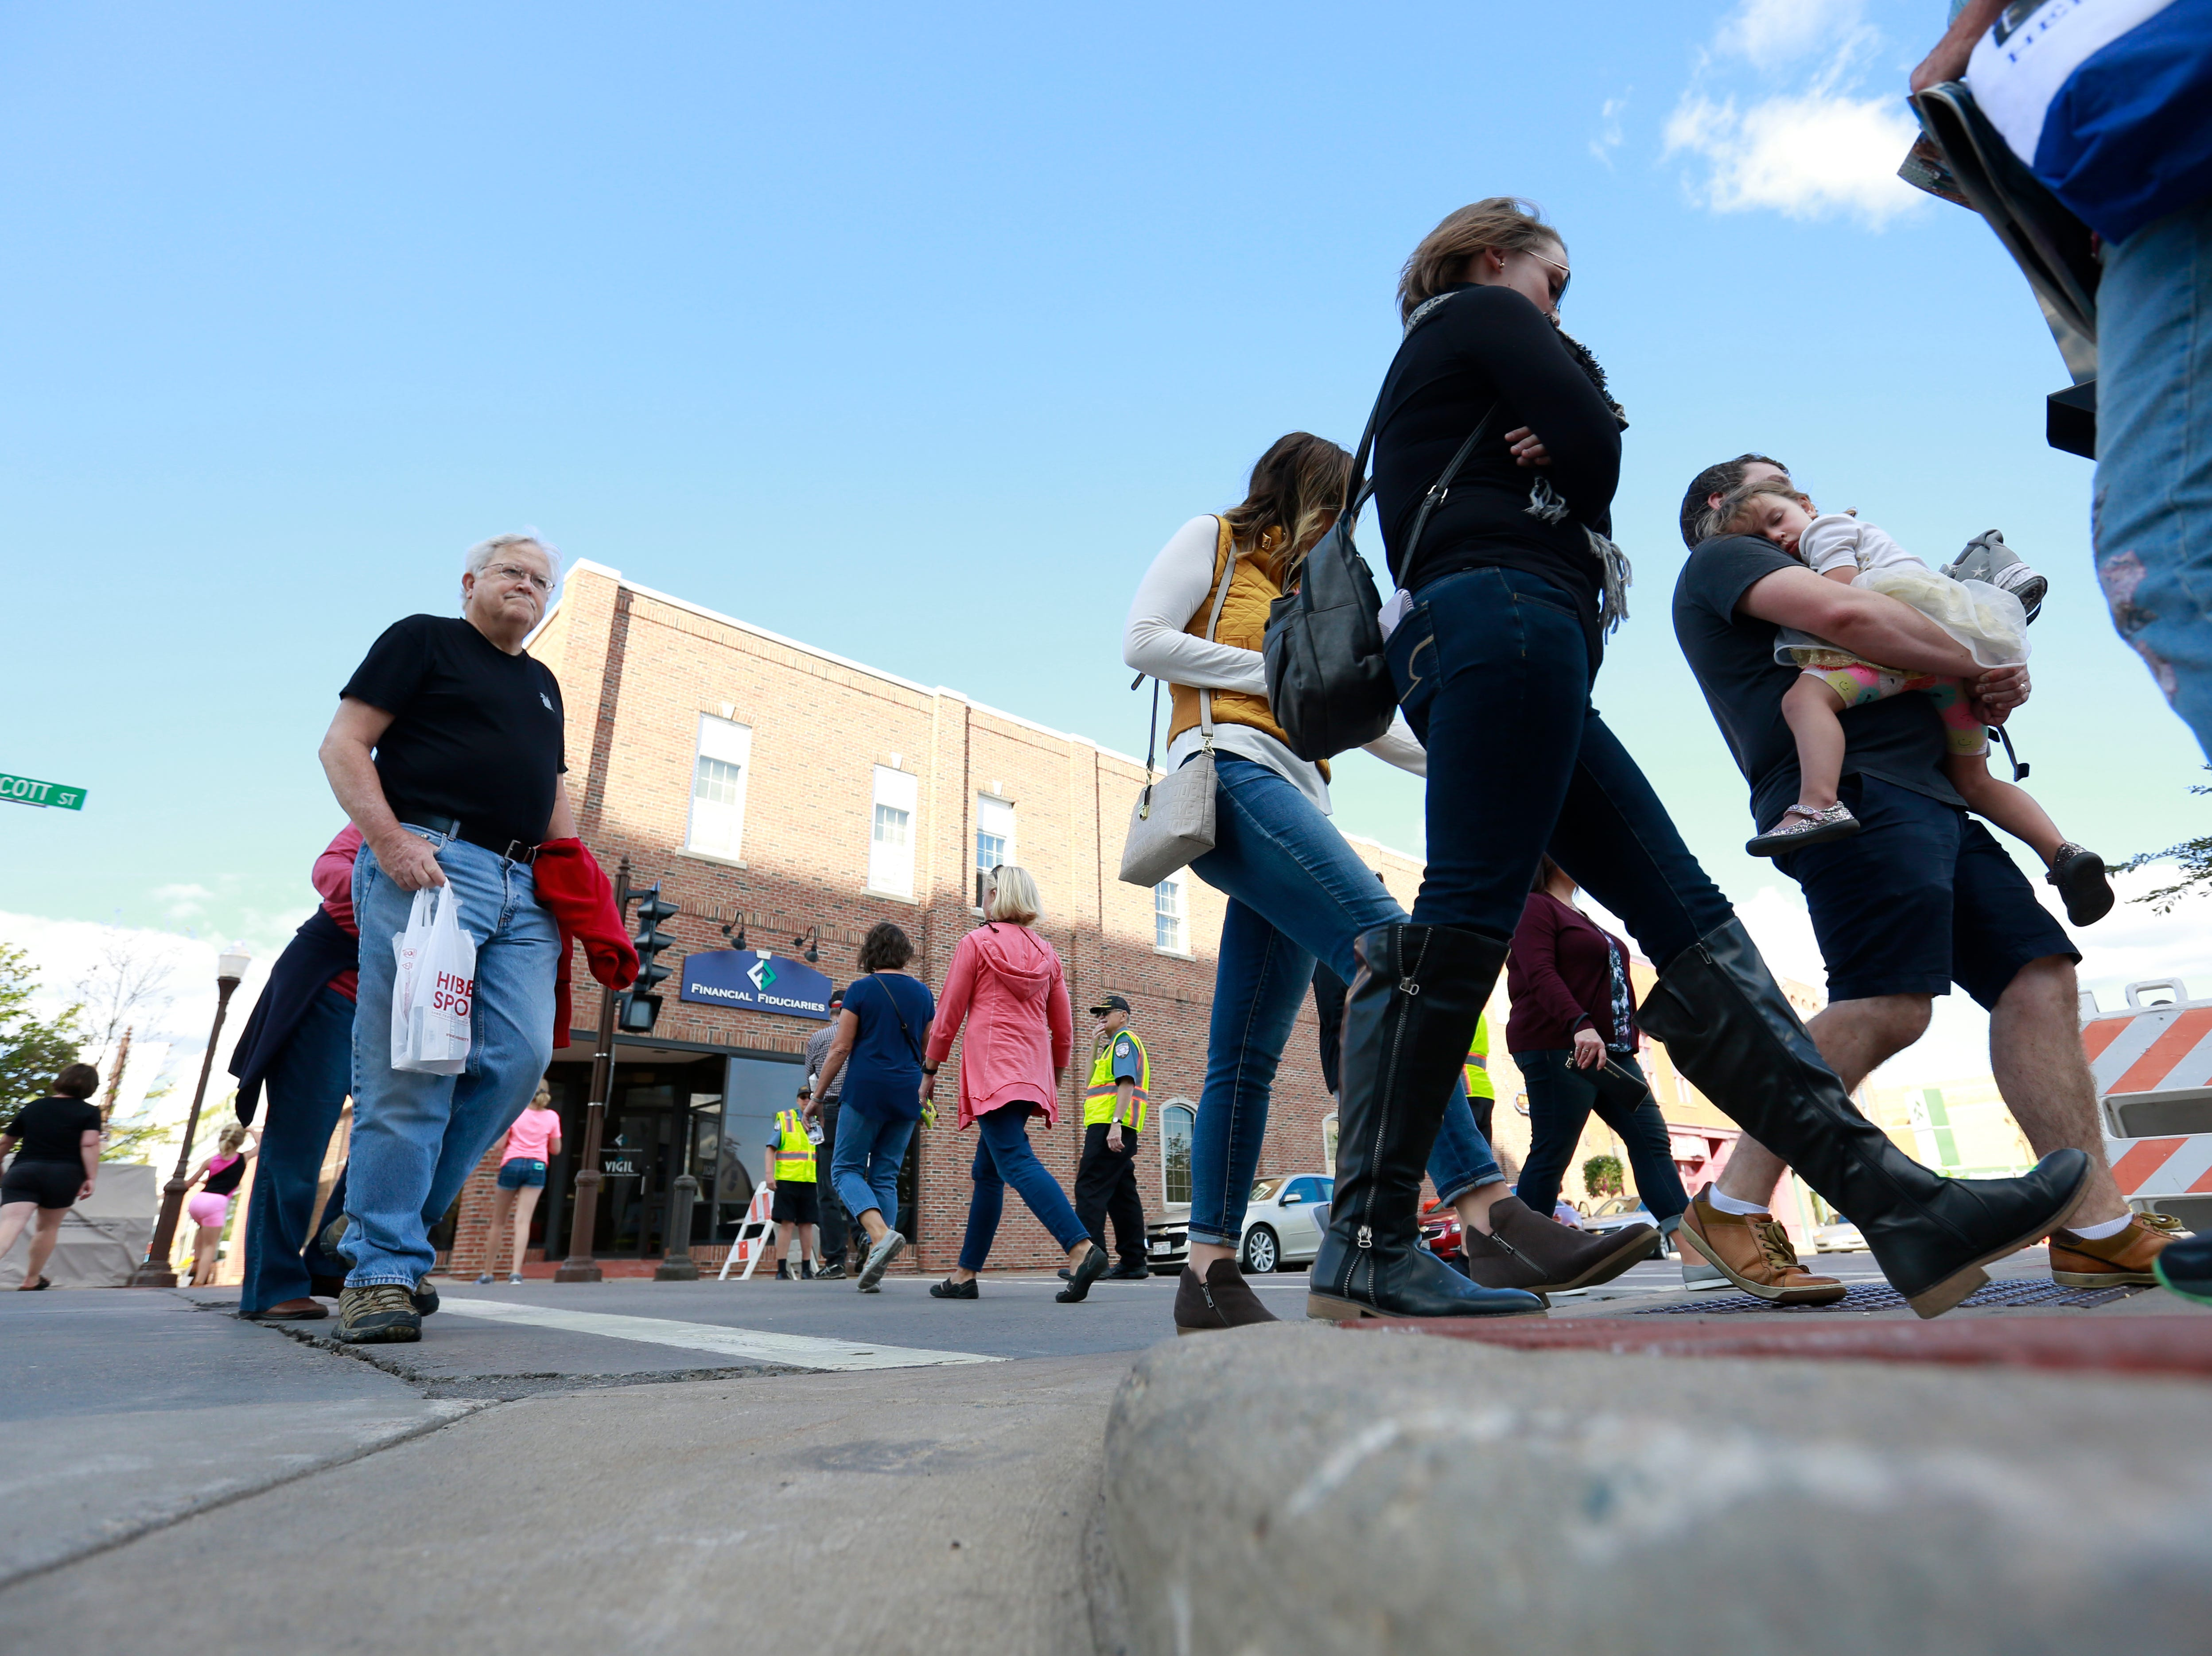 Pedestrians cross street at the corner of Scott Street and Third Street during Wausau Festival of Arts event held Saturday, Sept. 8, 2018, in downtown Wausau, Wis. T'xer Zhon Kha/USA TODAY NETWORK-Wisconsin